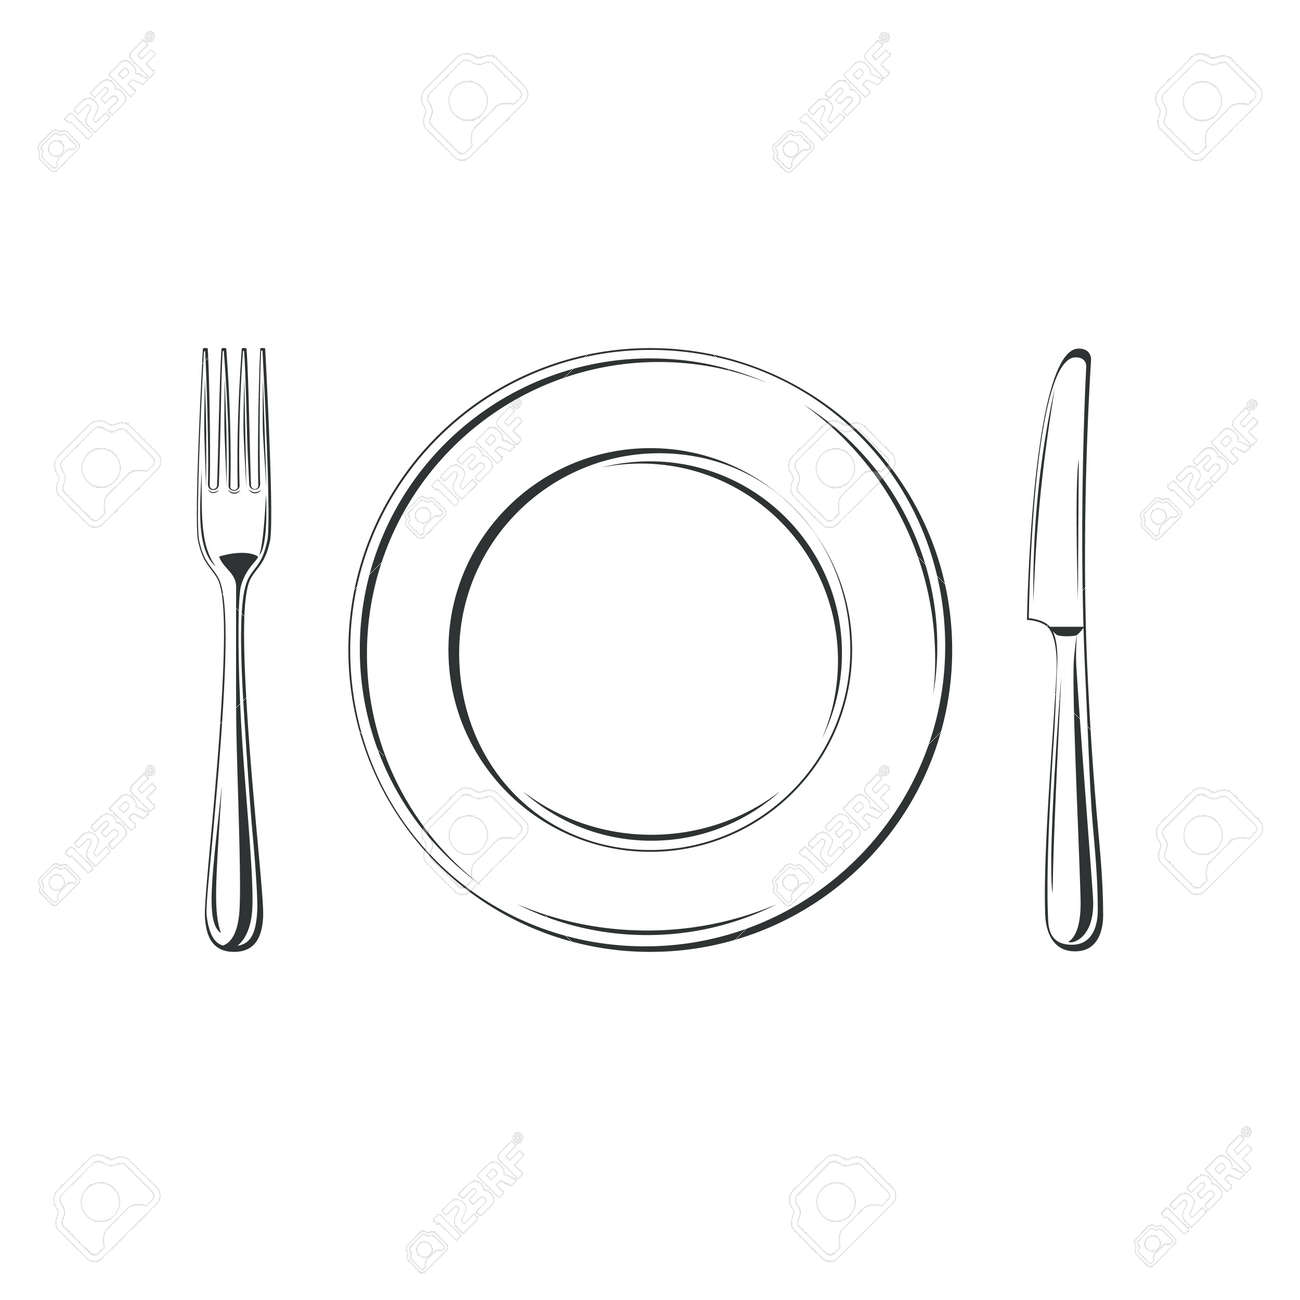 Knife, fork and plate, isolated on white background. Simple Icon. Vector illustration - 36842214